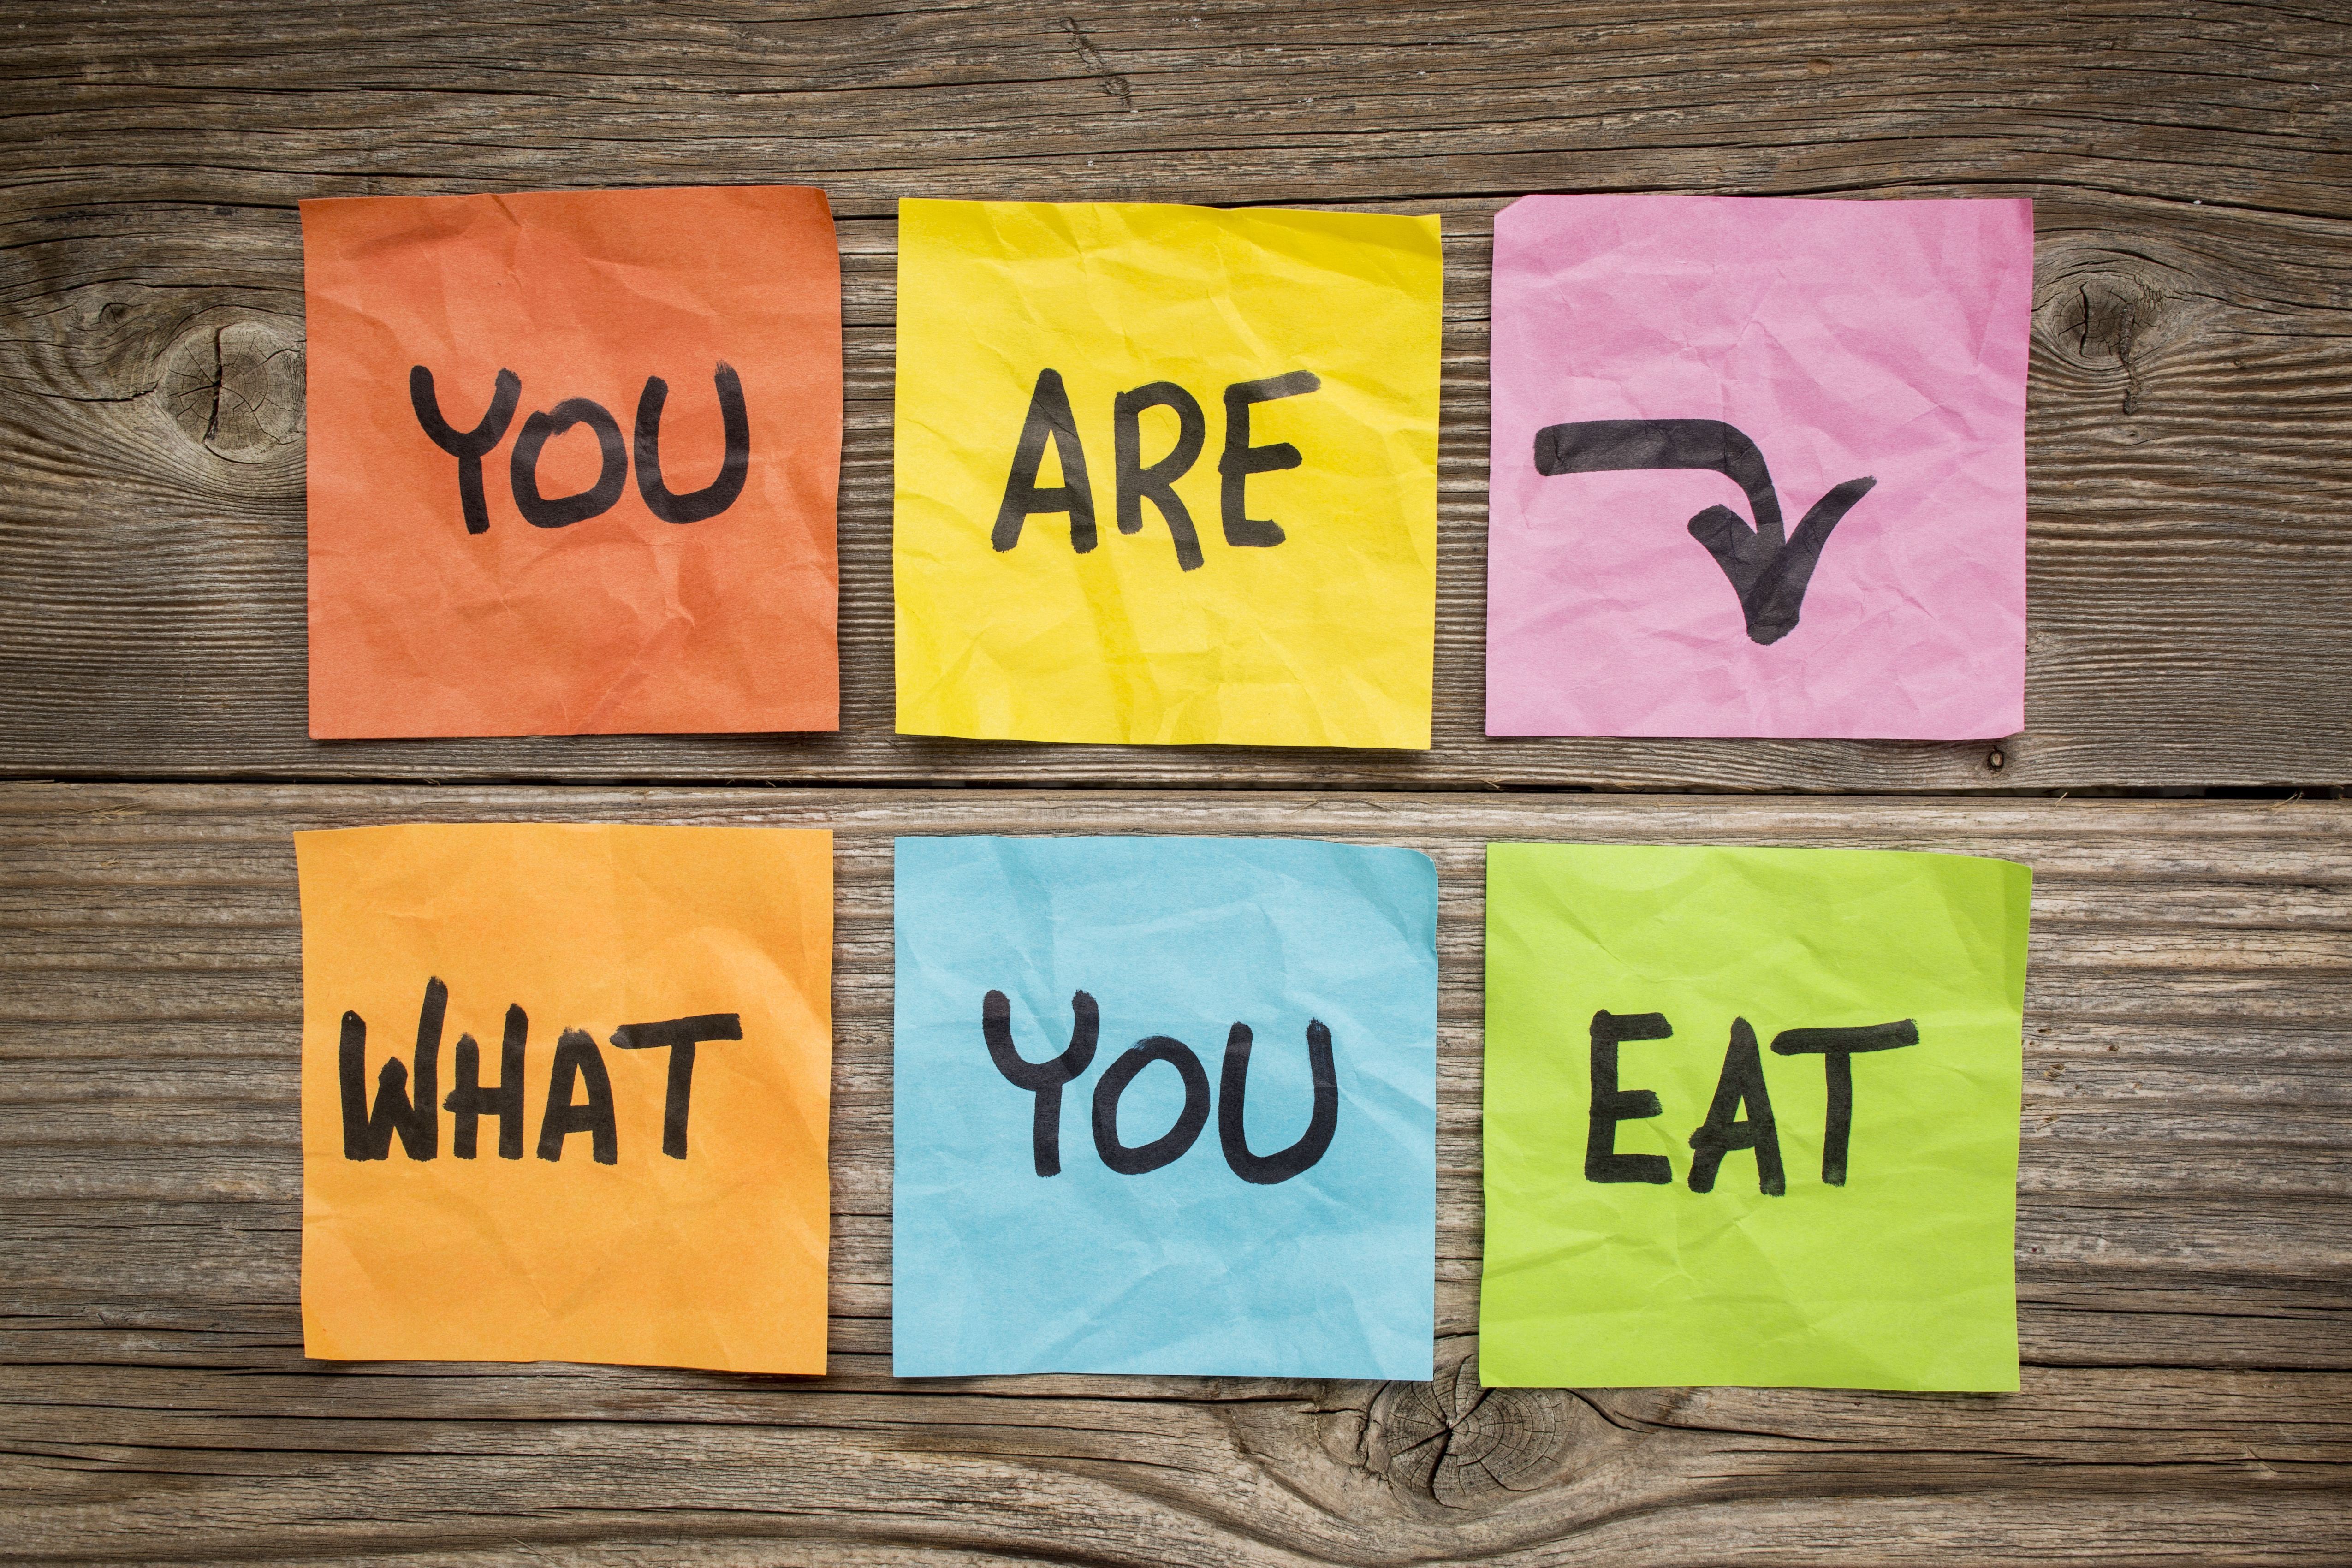 How should you eat before and after exercising?